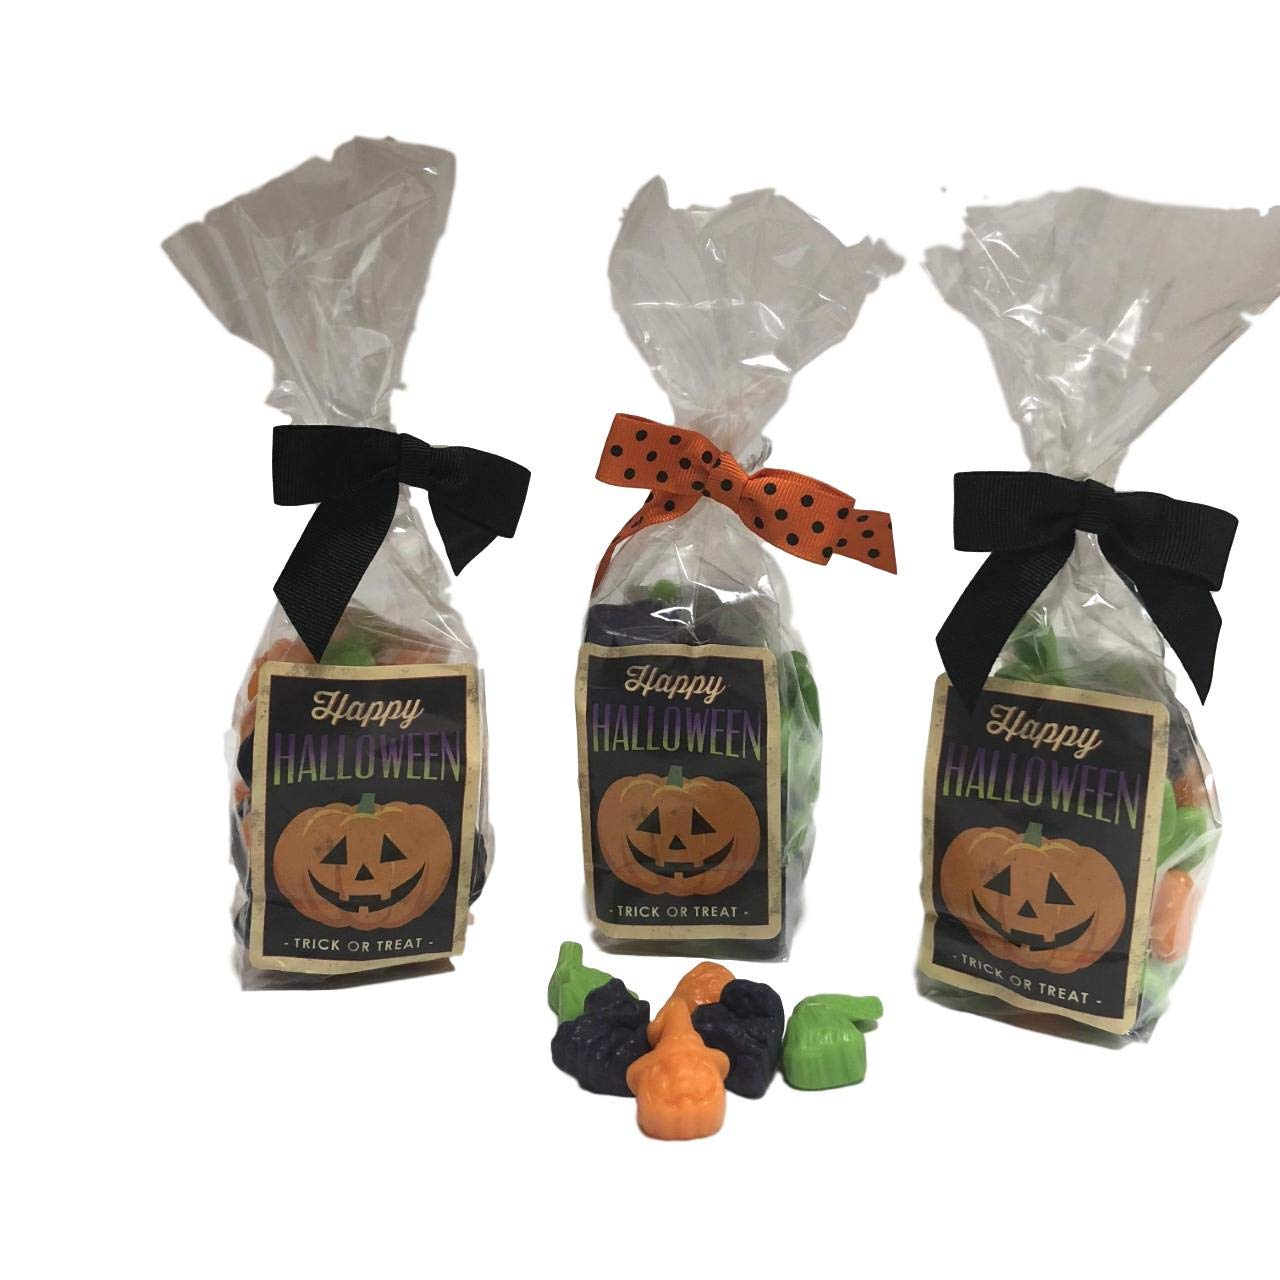 Gourmet Halloween Gummy Candy Mix with Cats Witches Broomsticks and Pumpkins 6 oz 3 Pack